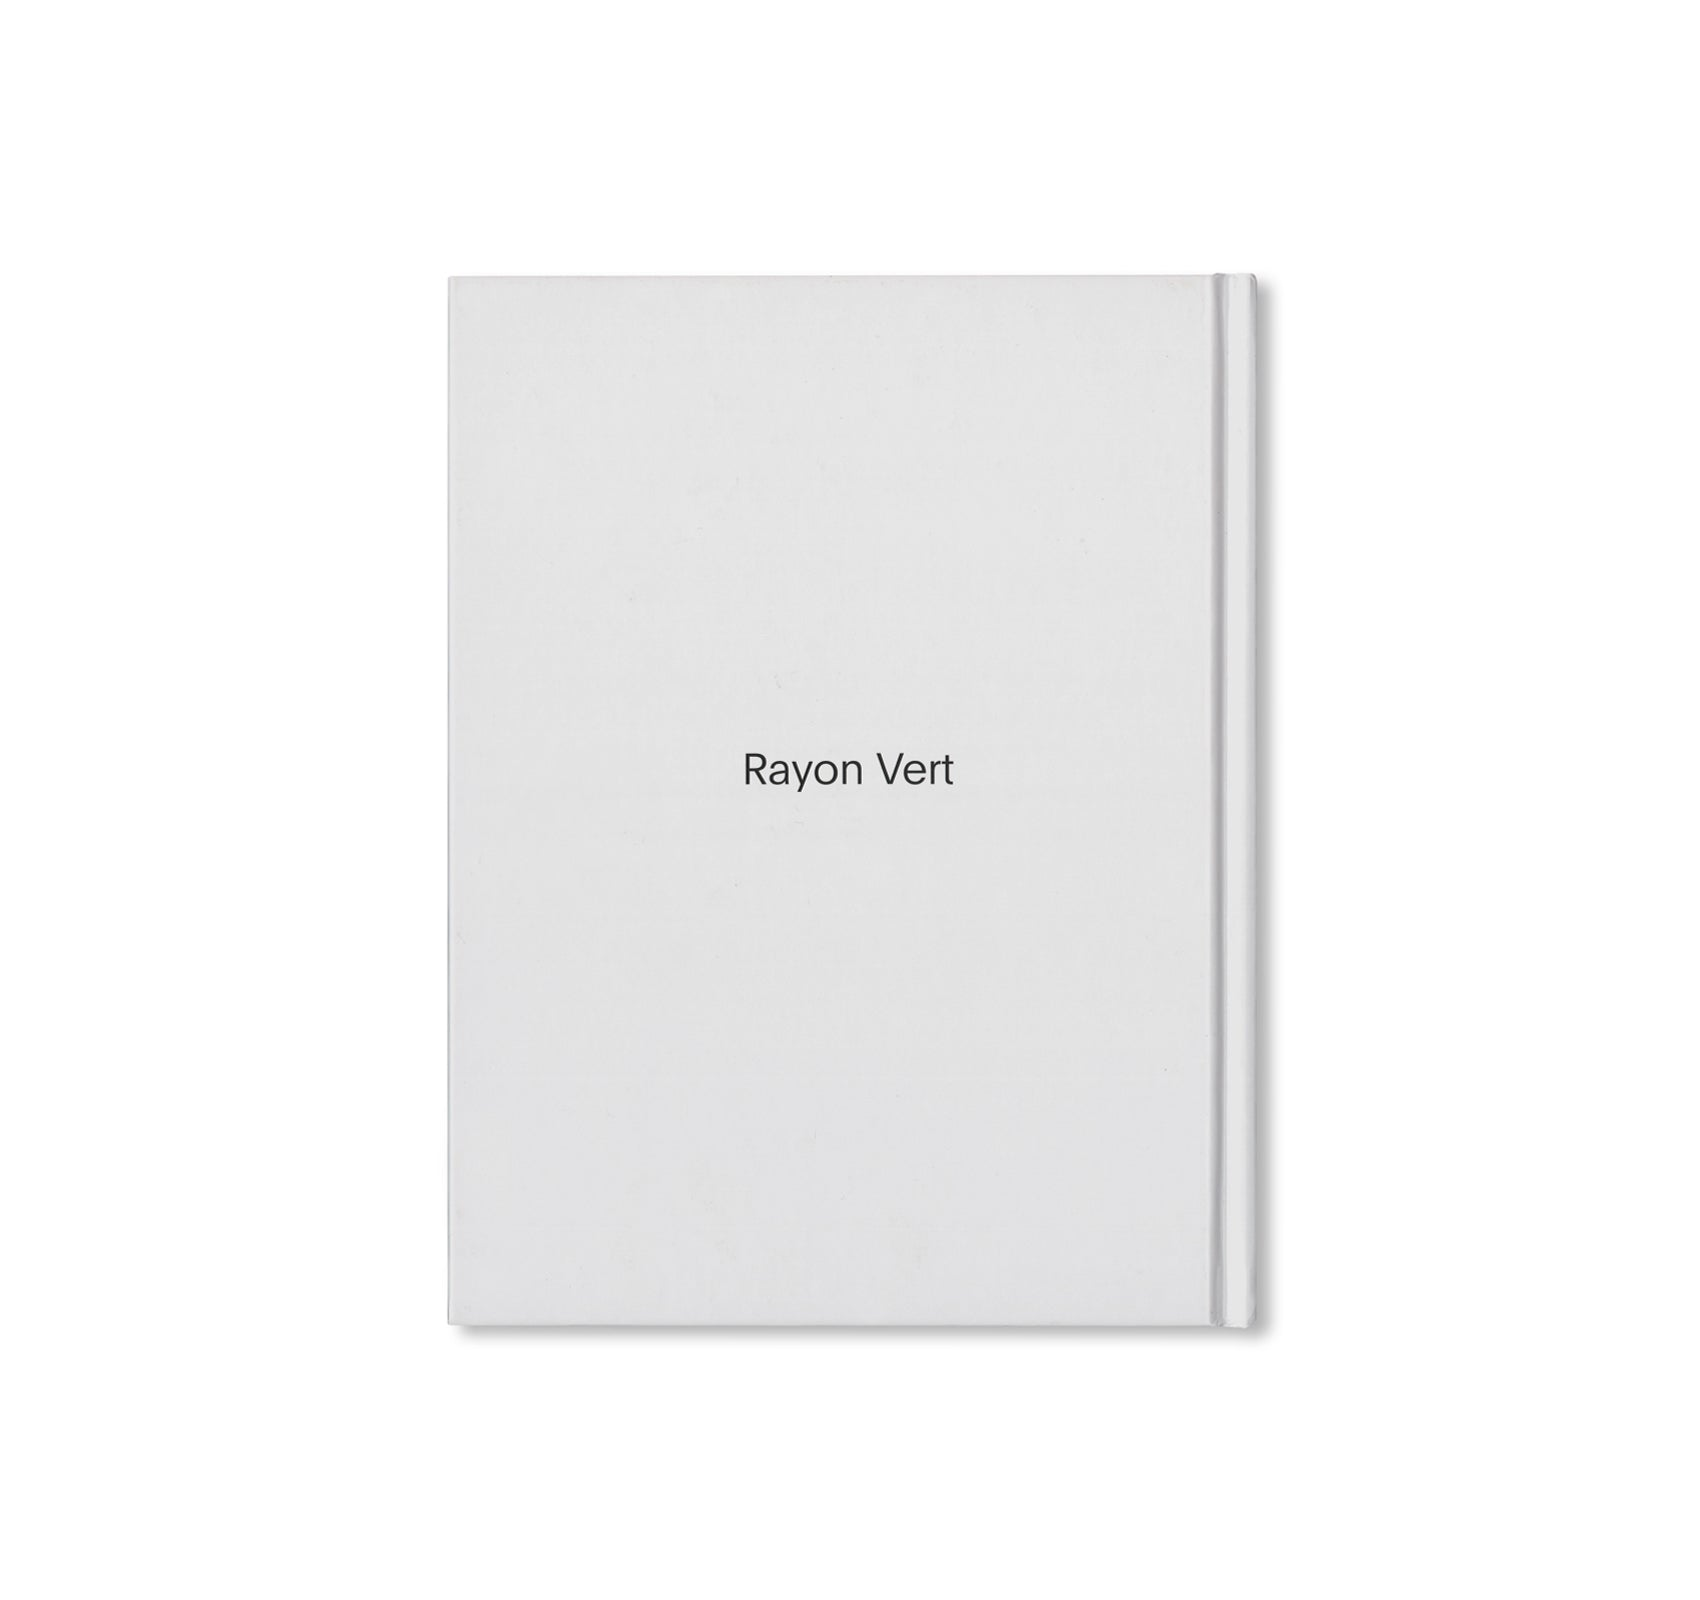 RAYON VERT by Senta Simond [SECOND EDITION / SIGNED]